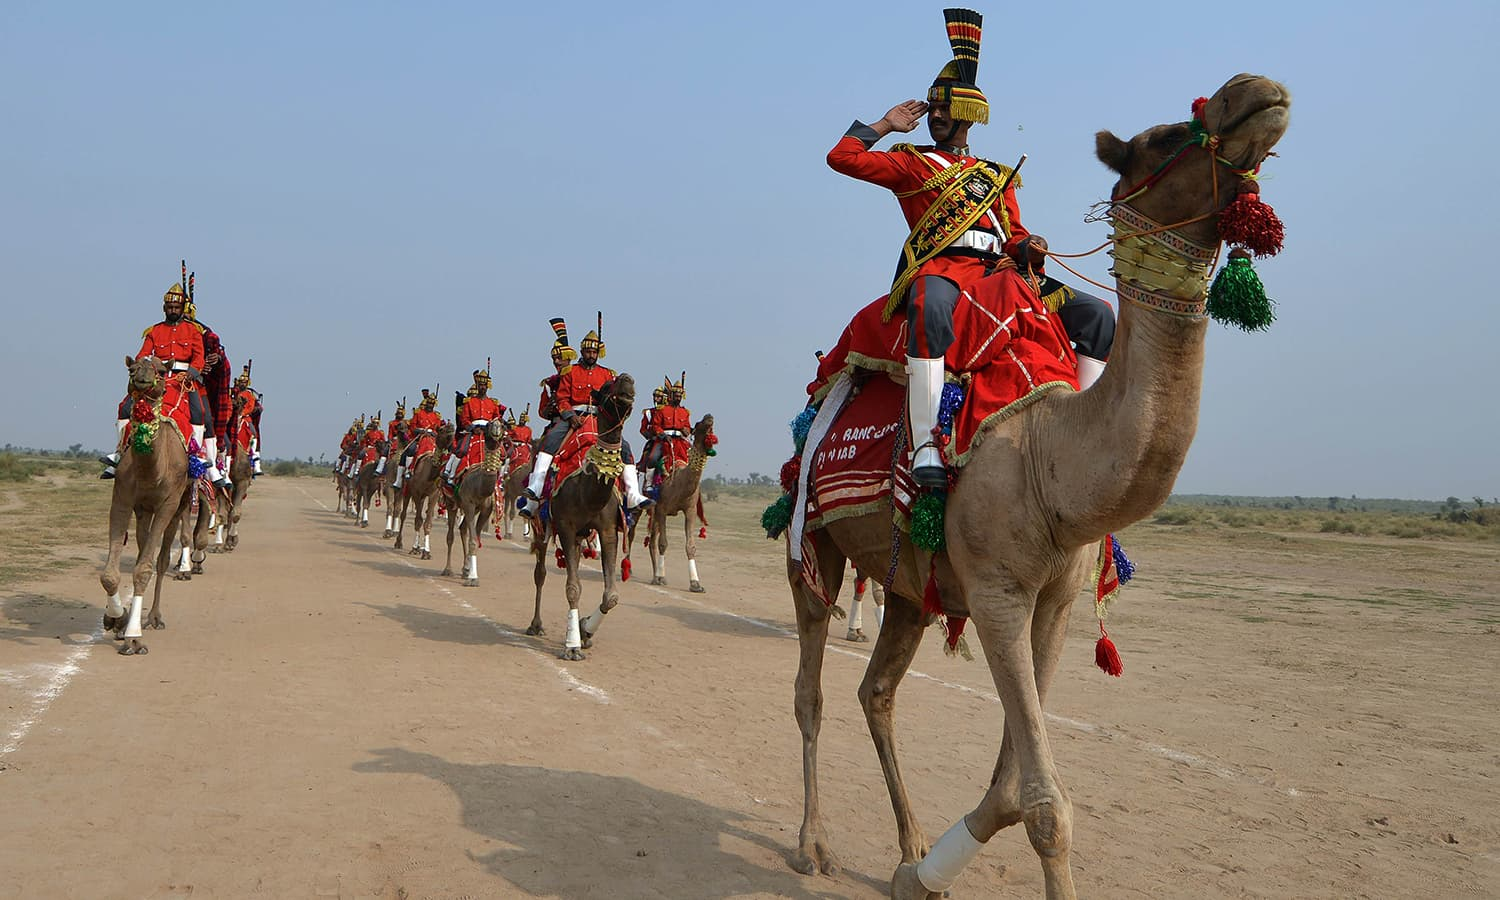 In this photograph taken on November 13, 2015, Band Major of Pakistan Desert Rangers, Muhammad Iqbal (R) salutrs as he conducts team members mounted on camels during a march in Moj Garh, some 100 kilometres east of Bahawalpur in Punjab province. —AFP